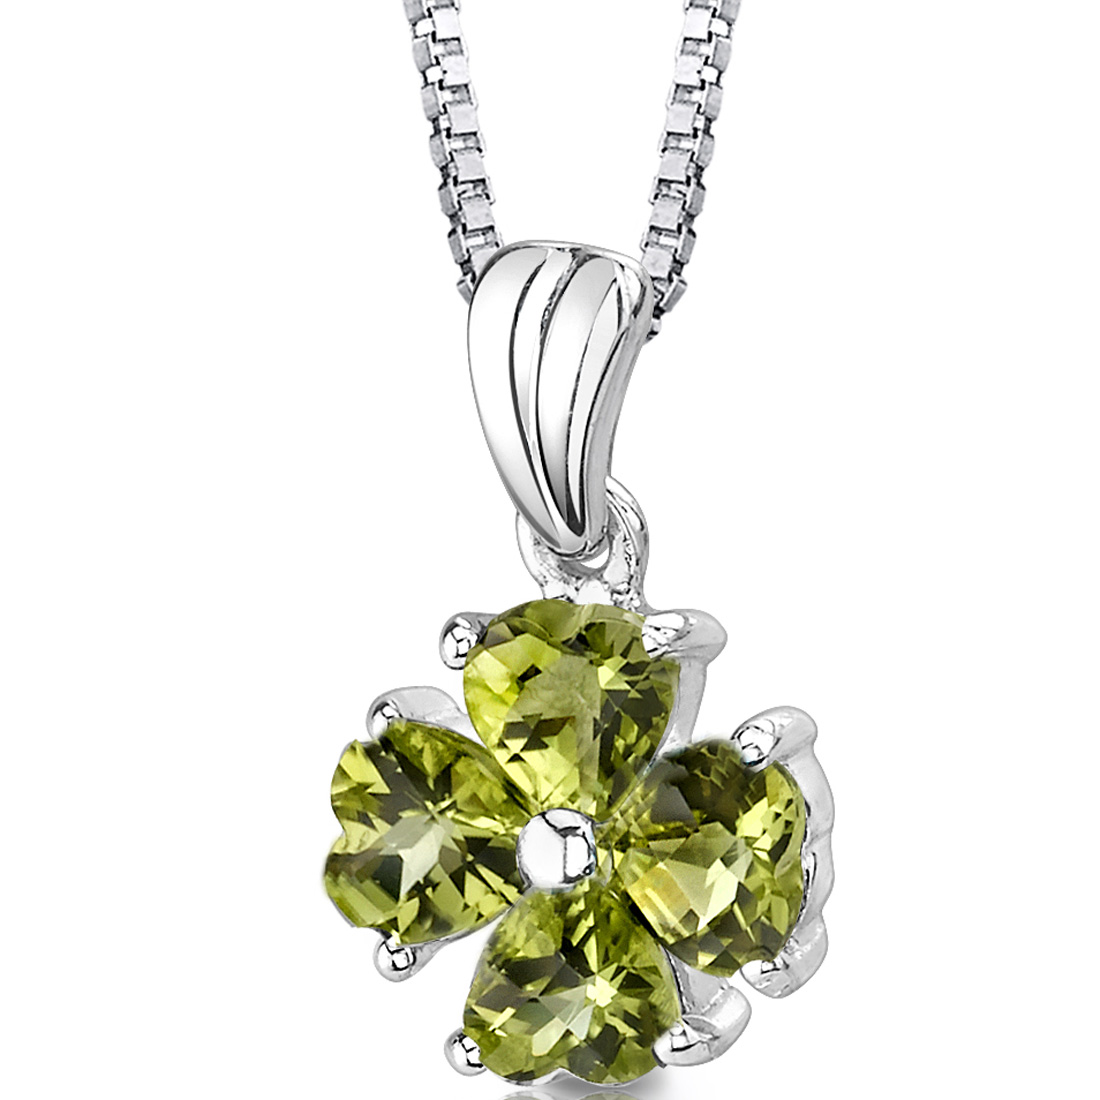 peora Irresistible Desire: Sterling Silver 2.00 carats Heart Shape Checkerboard Cut Peridot Pendant at Sears.com